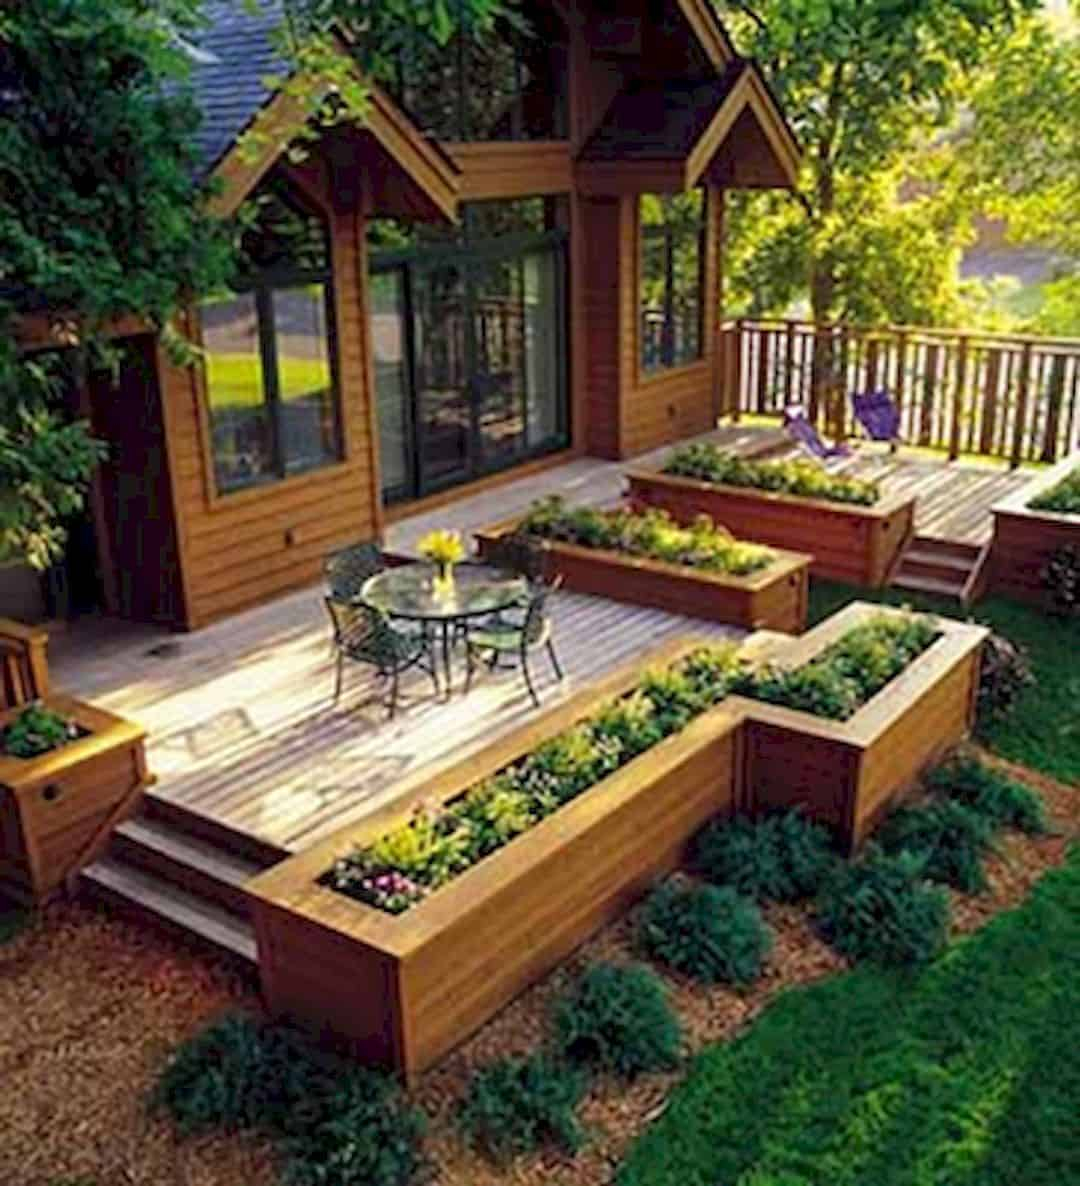 4 Tips To Start Building A Backyard Deck Futurist Architecture intended for Backyard Decks Ideas